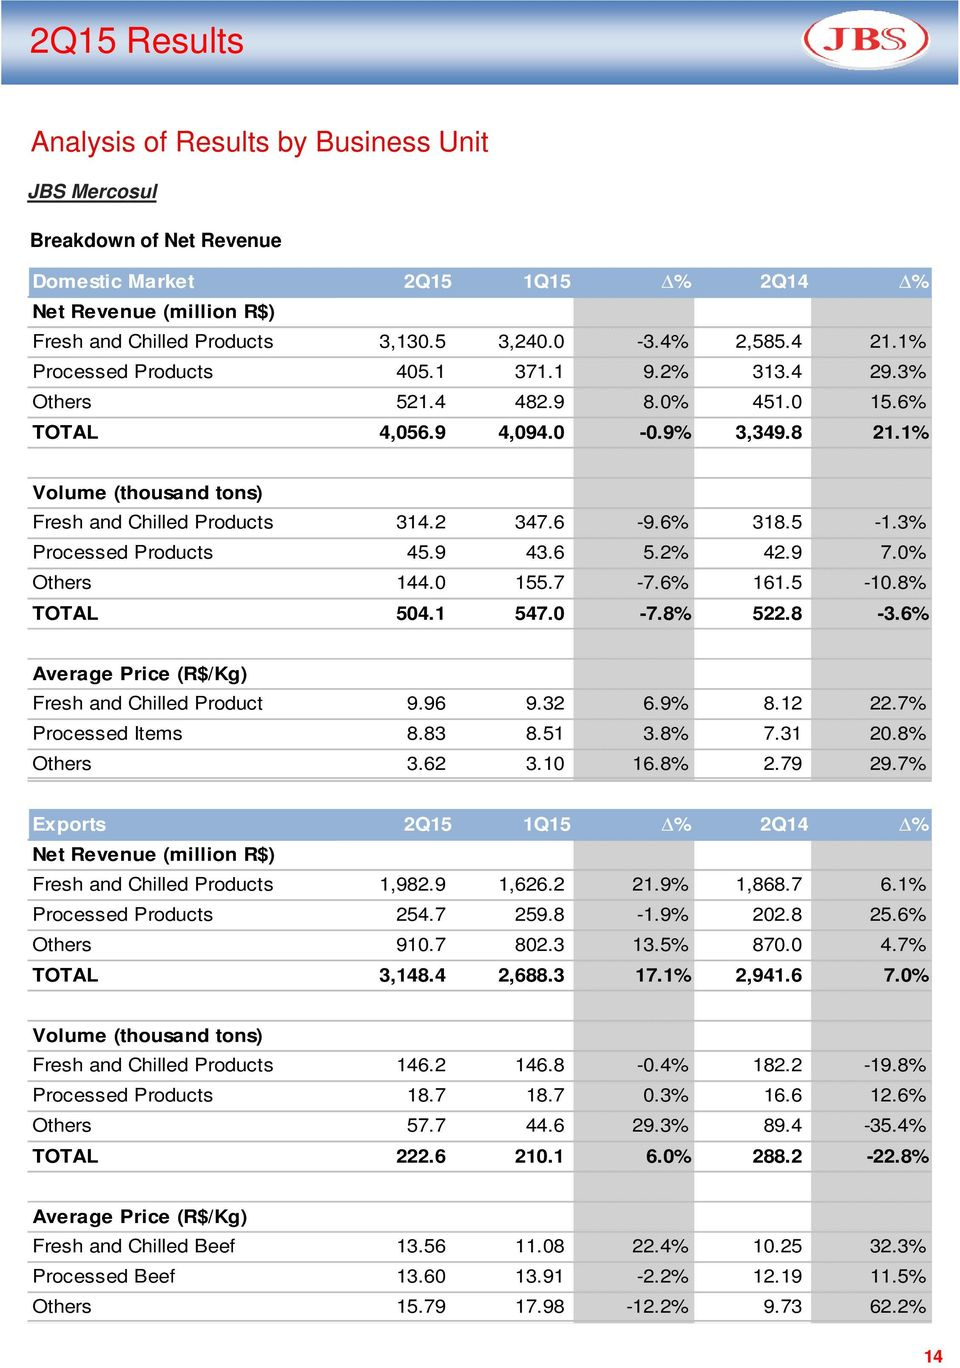 5-1.3% Processed Products 45.9 43.6 5.2% 42.9 7.0% Others 144.0 155.7-7.6% 161.5-10.8% TOTAL 504.1 547.0-7.8% 522.8-3.6% Average Price (R$/Kg) Fresh and Chilled Product 9.96 9.32 6.9% 8.12 22.